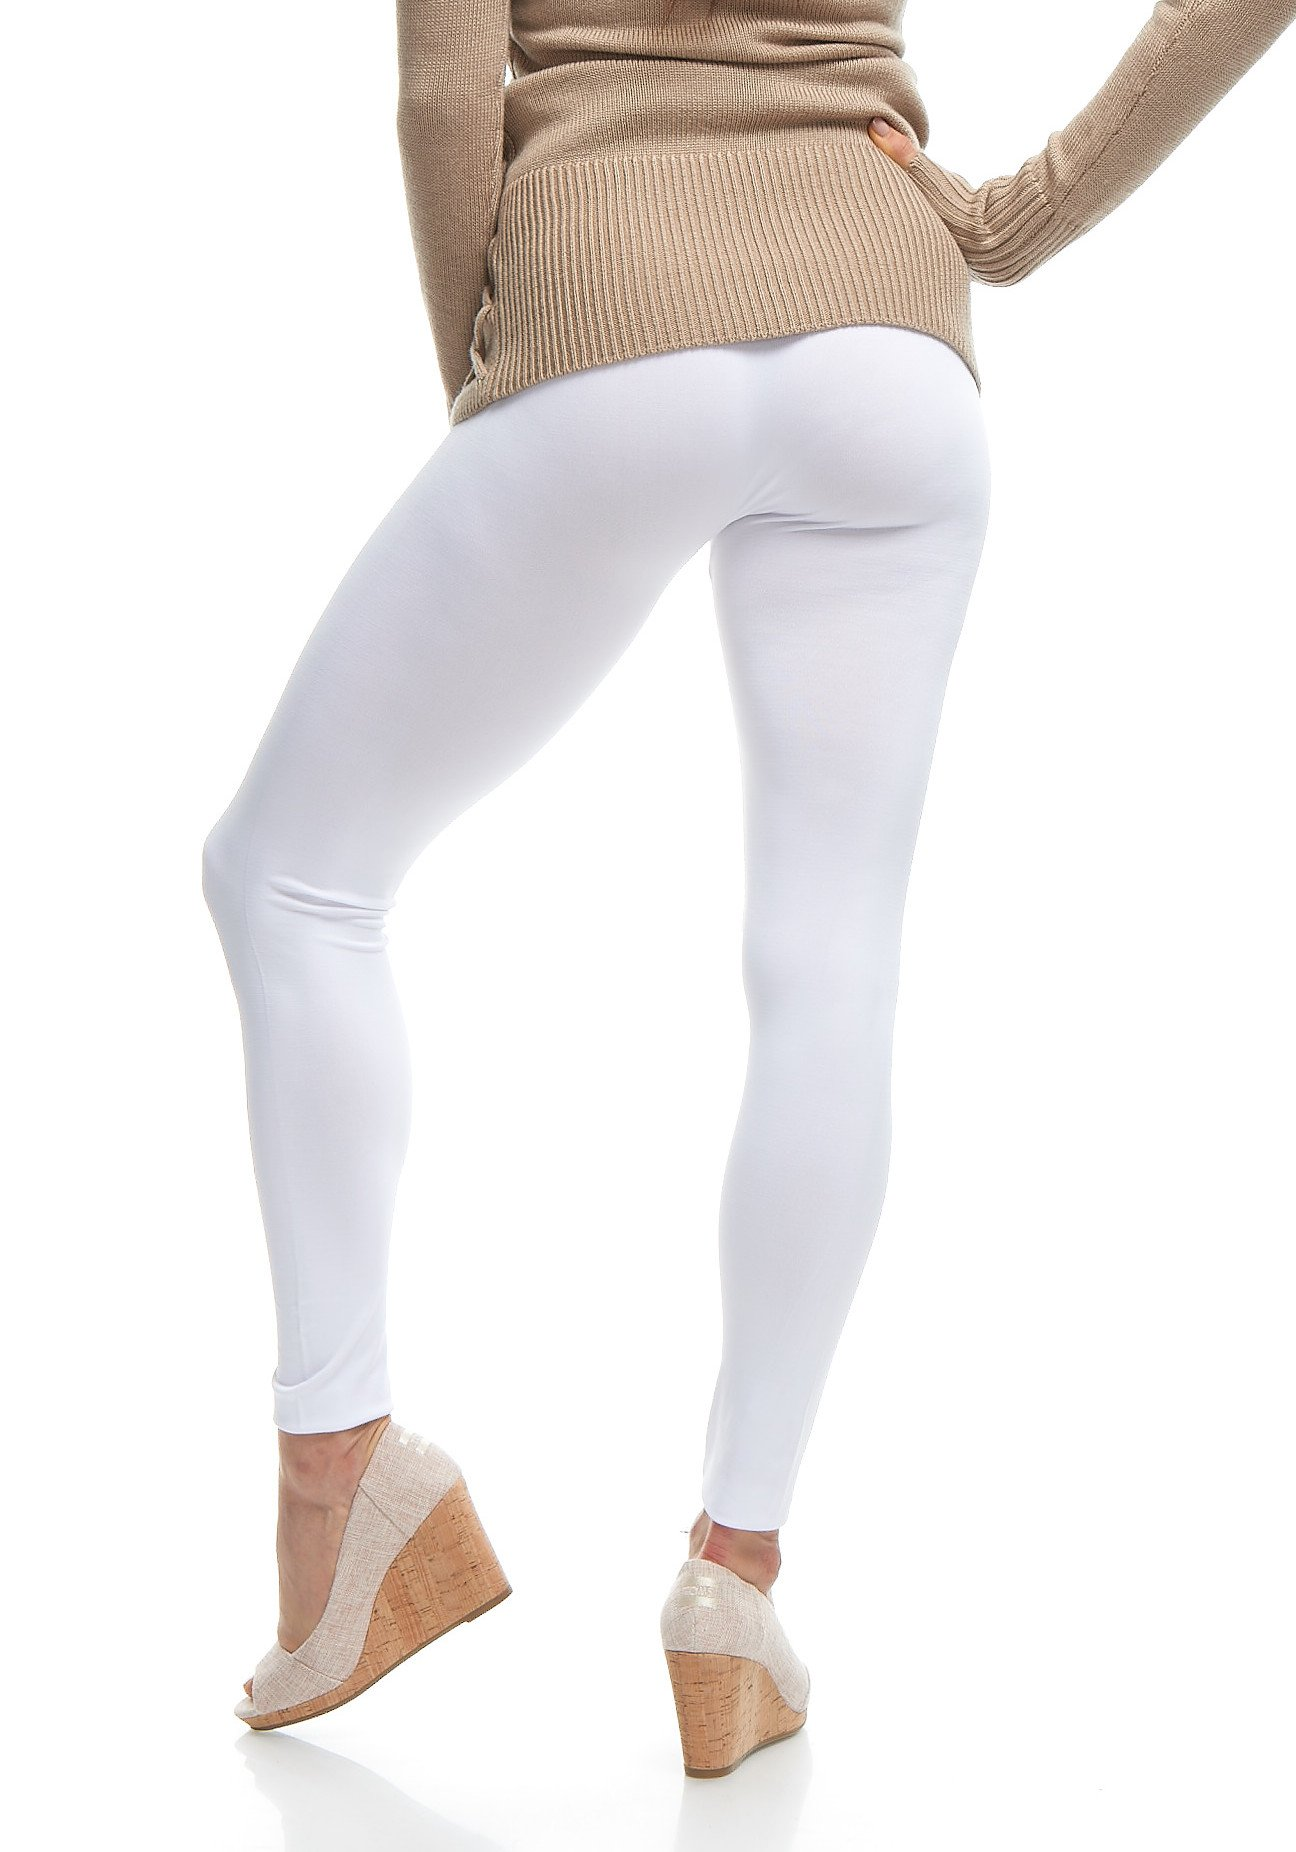 f6424def3275c LMB   Seamless Full Length Leggings   Variety of Colors   One Size   White  - LMB3010-White-OS < Leggings < Clothing, Shoes & Jewelry - tibs